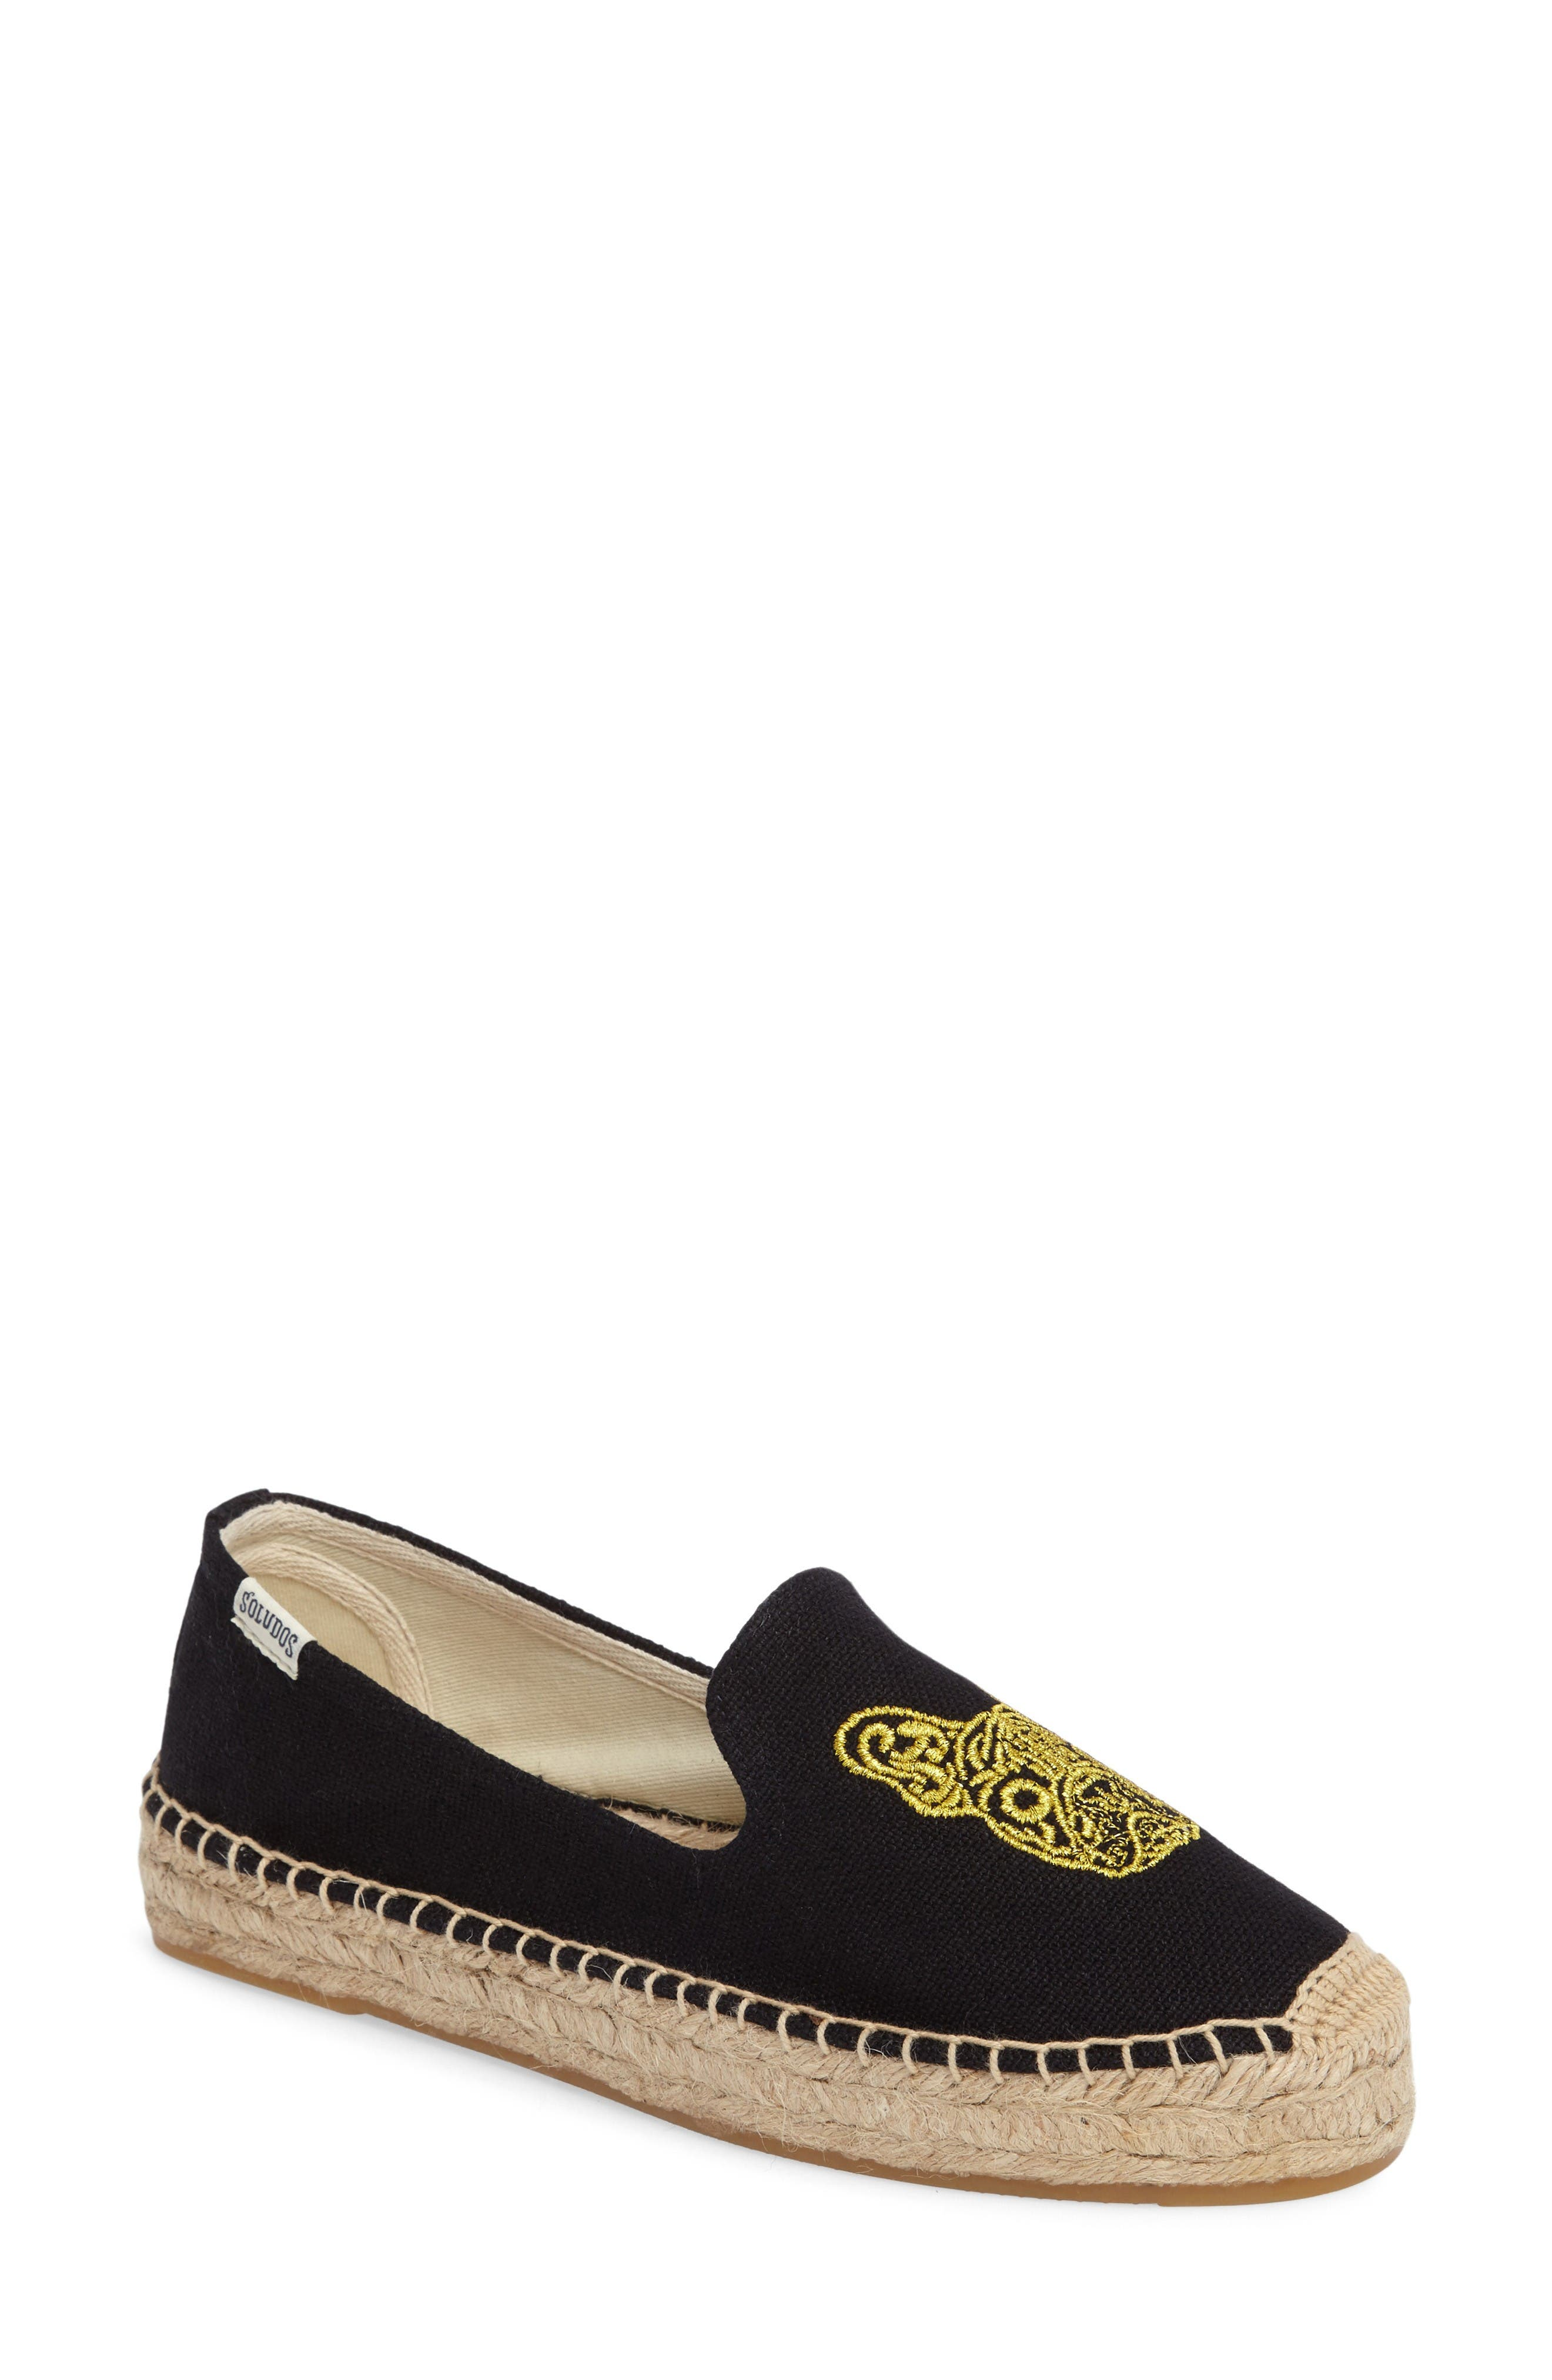 Main Image - Soludos Frenchie Espadrille Loafer (Women)